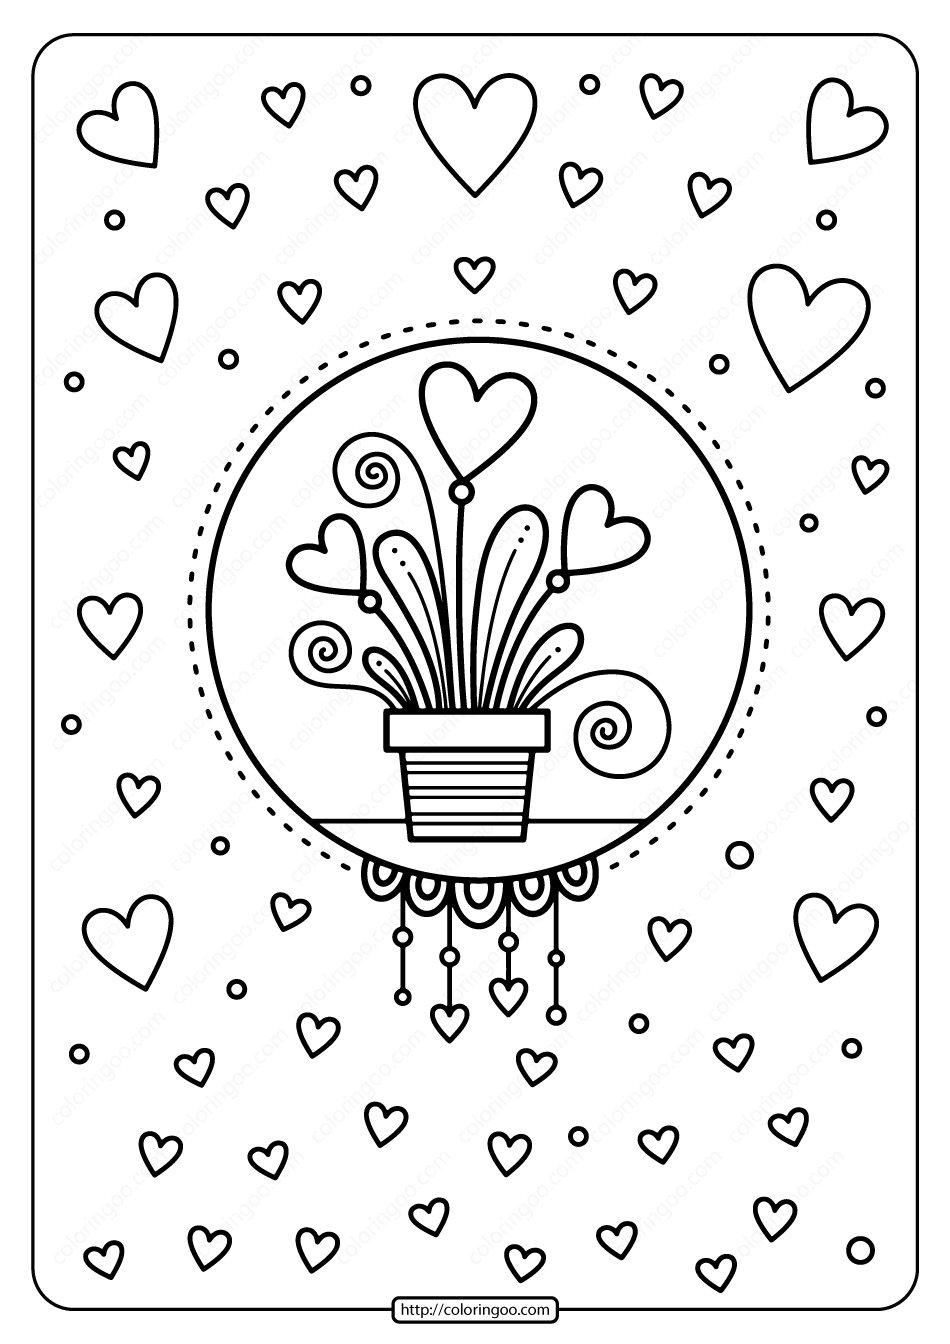 Printable Hearts In Flower Pot Pdf Coloring Page Valentine Coloring Pages Valentines Day Coloring Page Coloring Pages